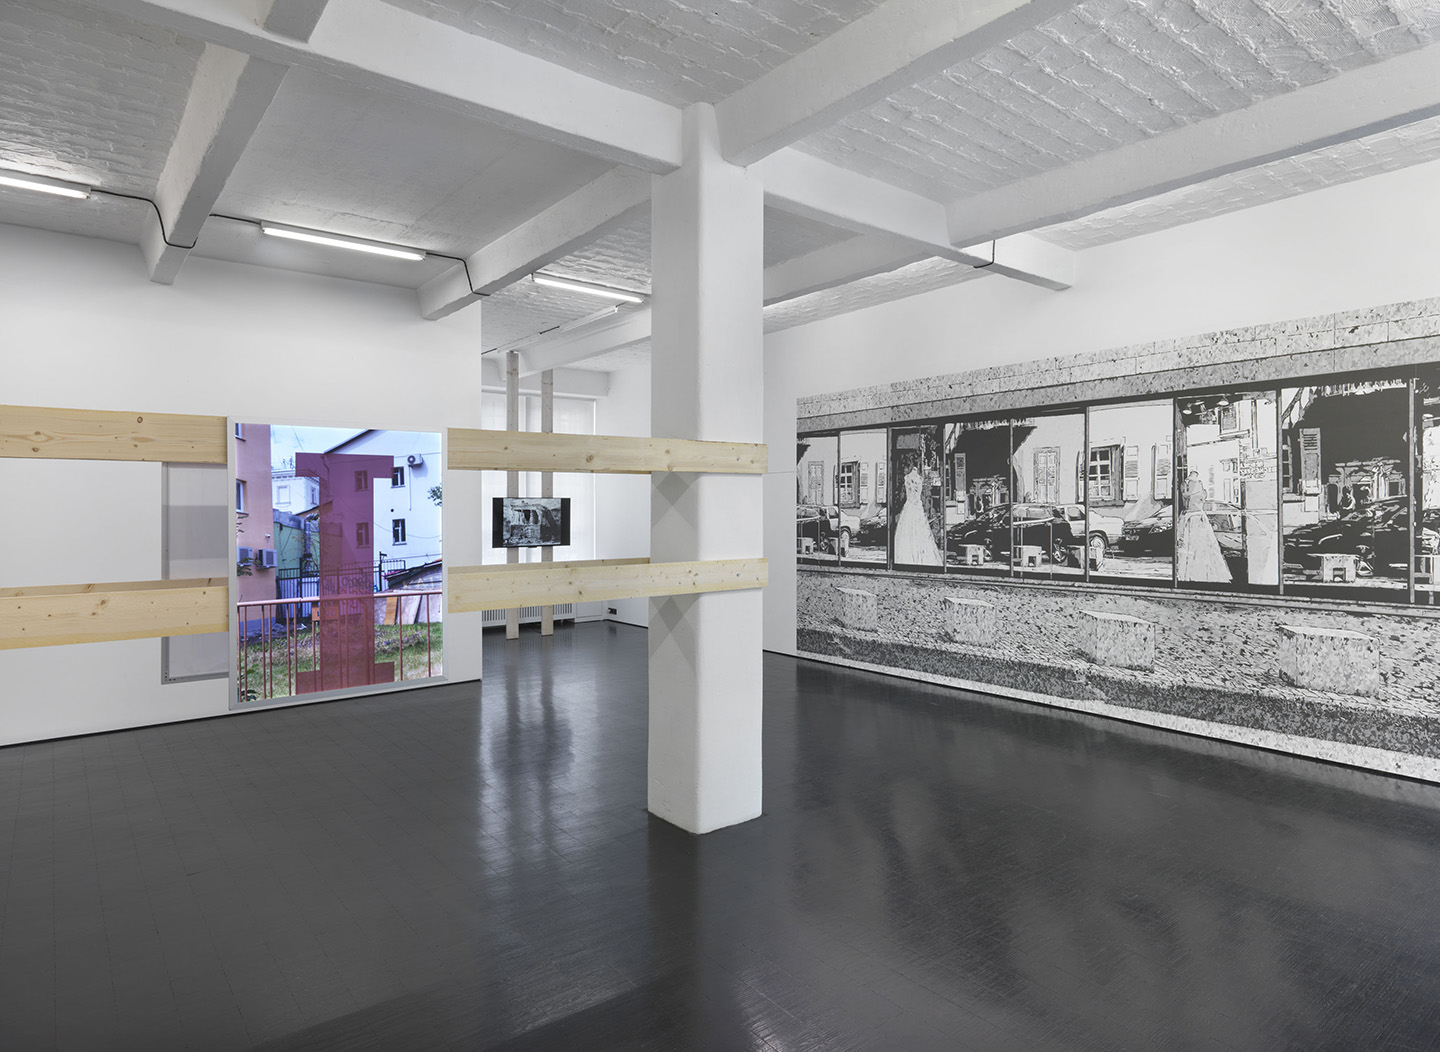 John Miller, Primary Structures, (2017). Courtesy: the artist and Galerie Barbara Weiss, Berlin